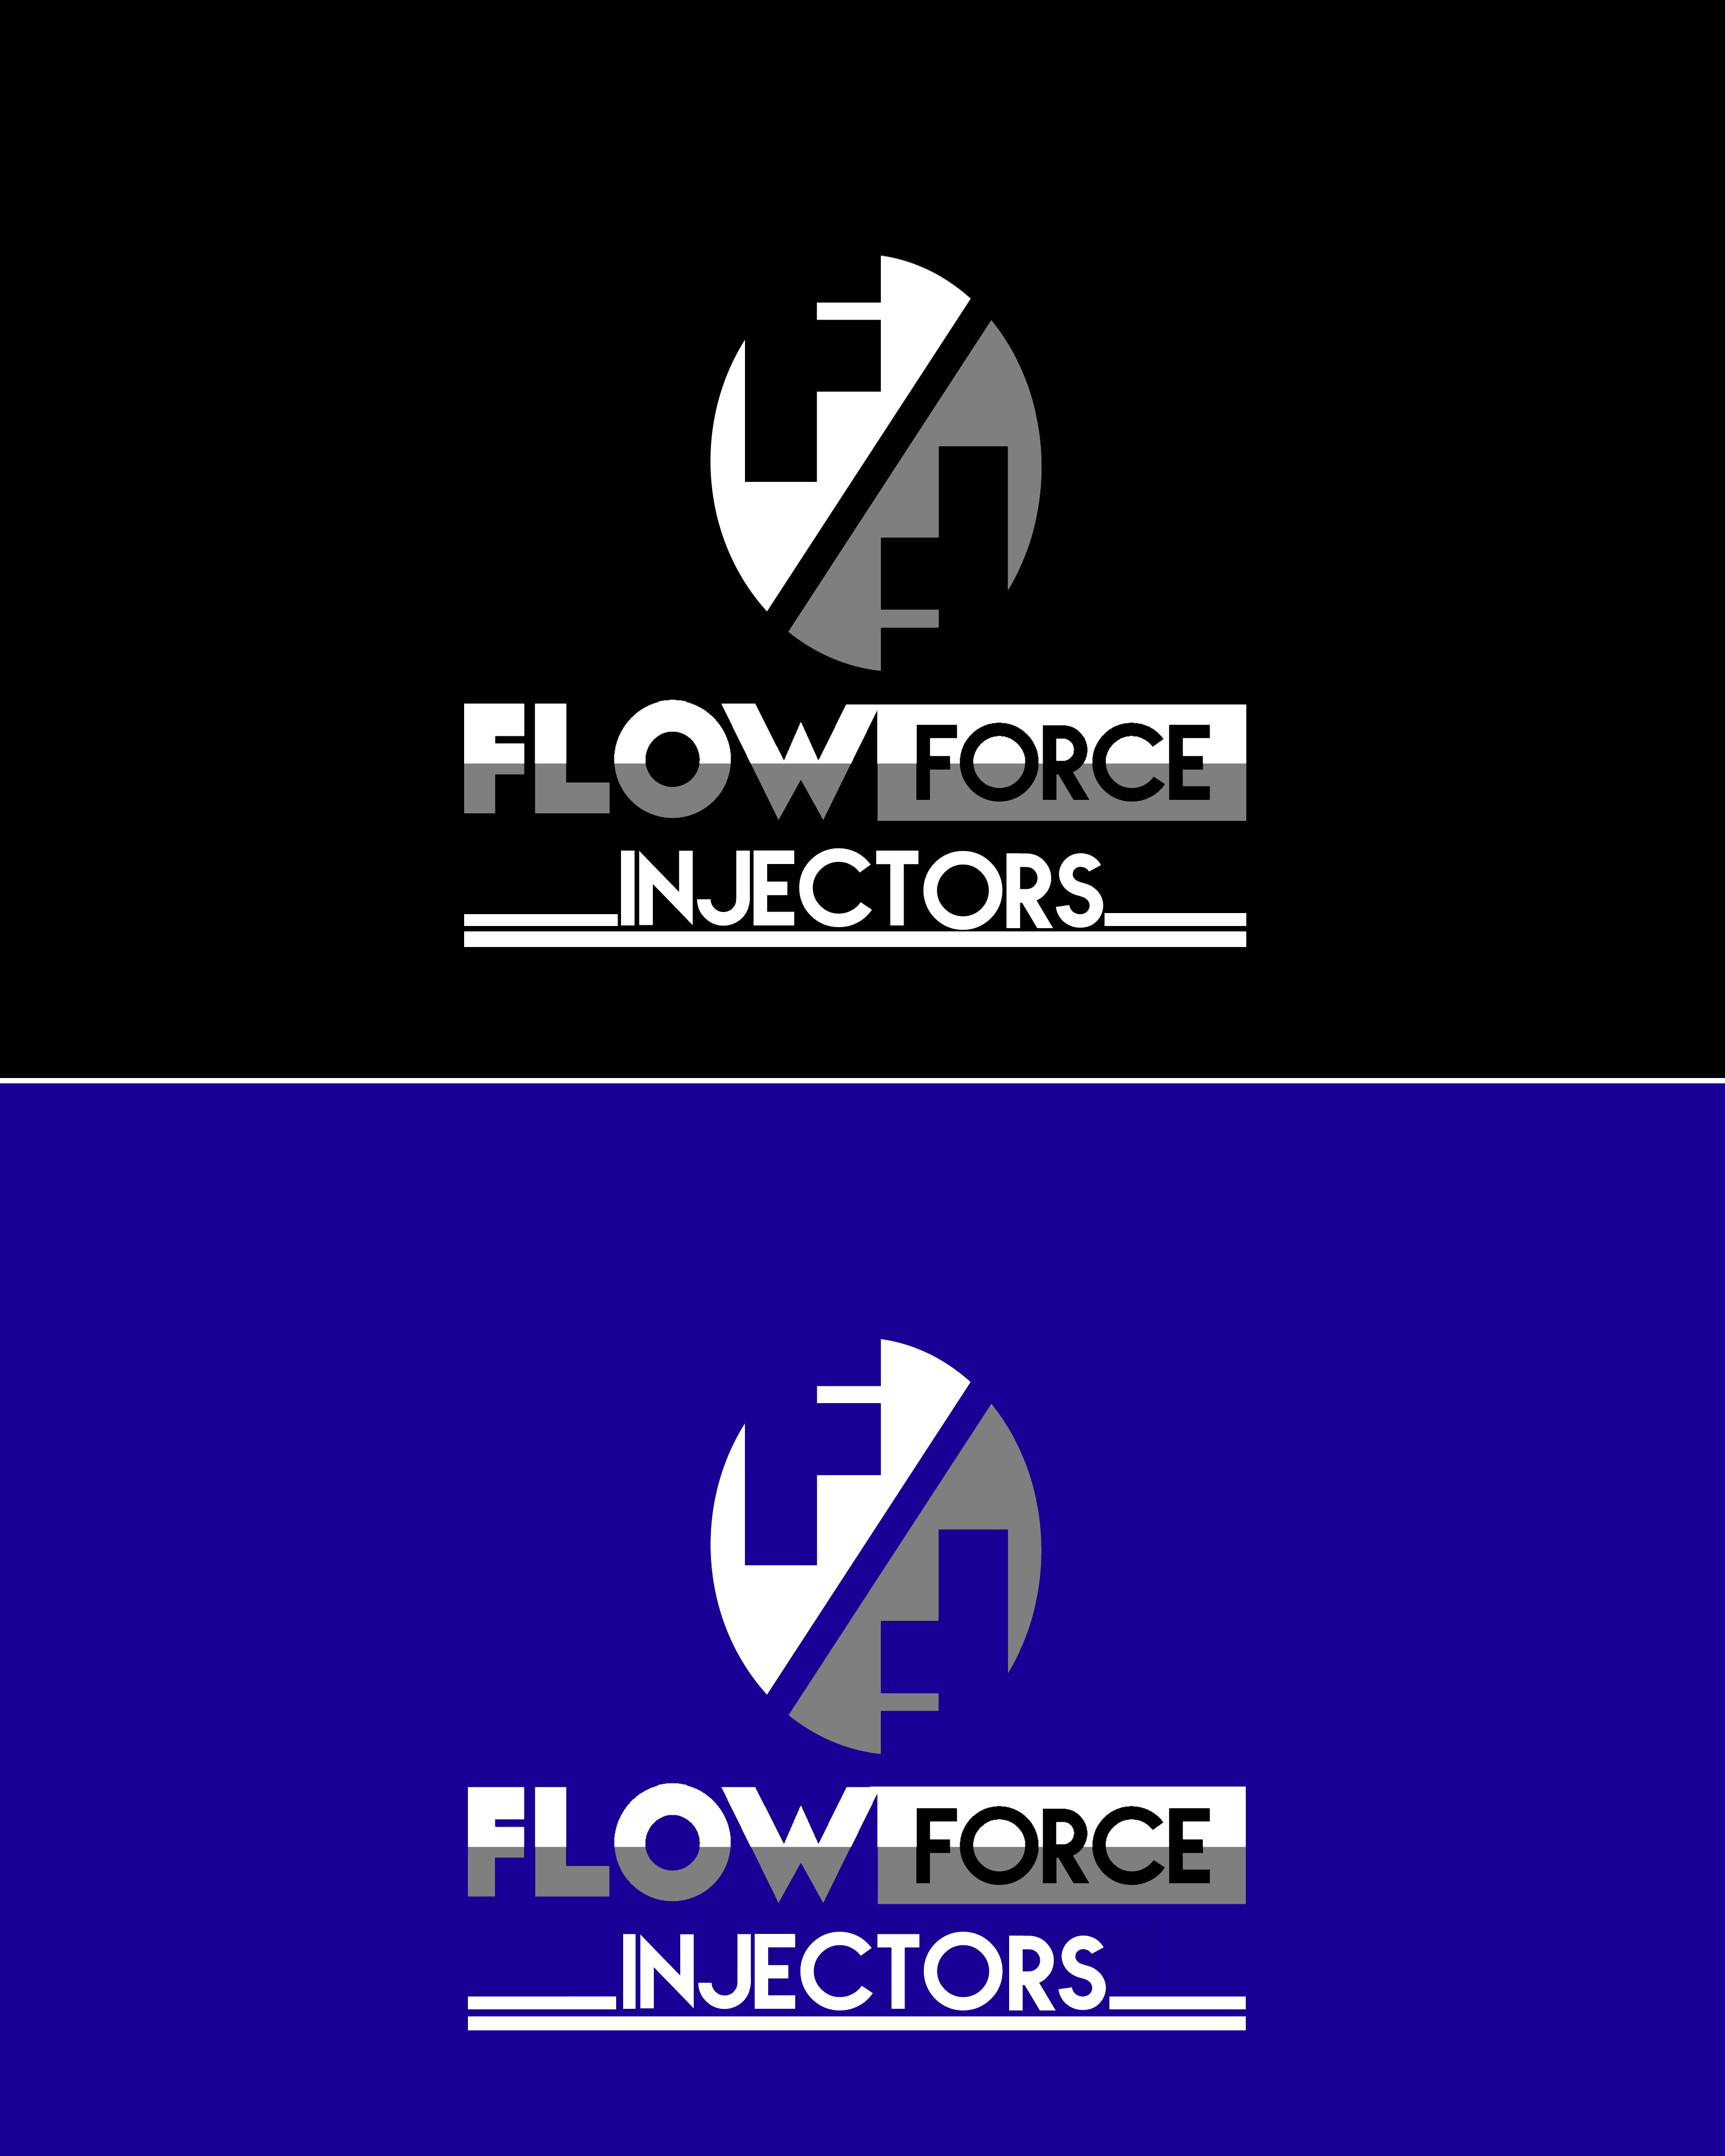 Logo Design by Roberto Bassi - Entry No. 118 in the Logo Design Contest Fun Logo Design for Flow Force Injectors.